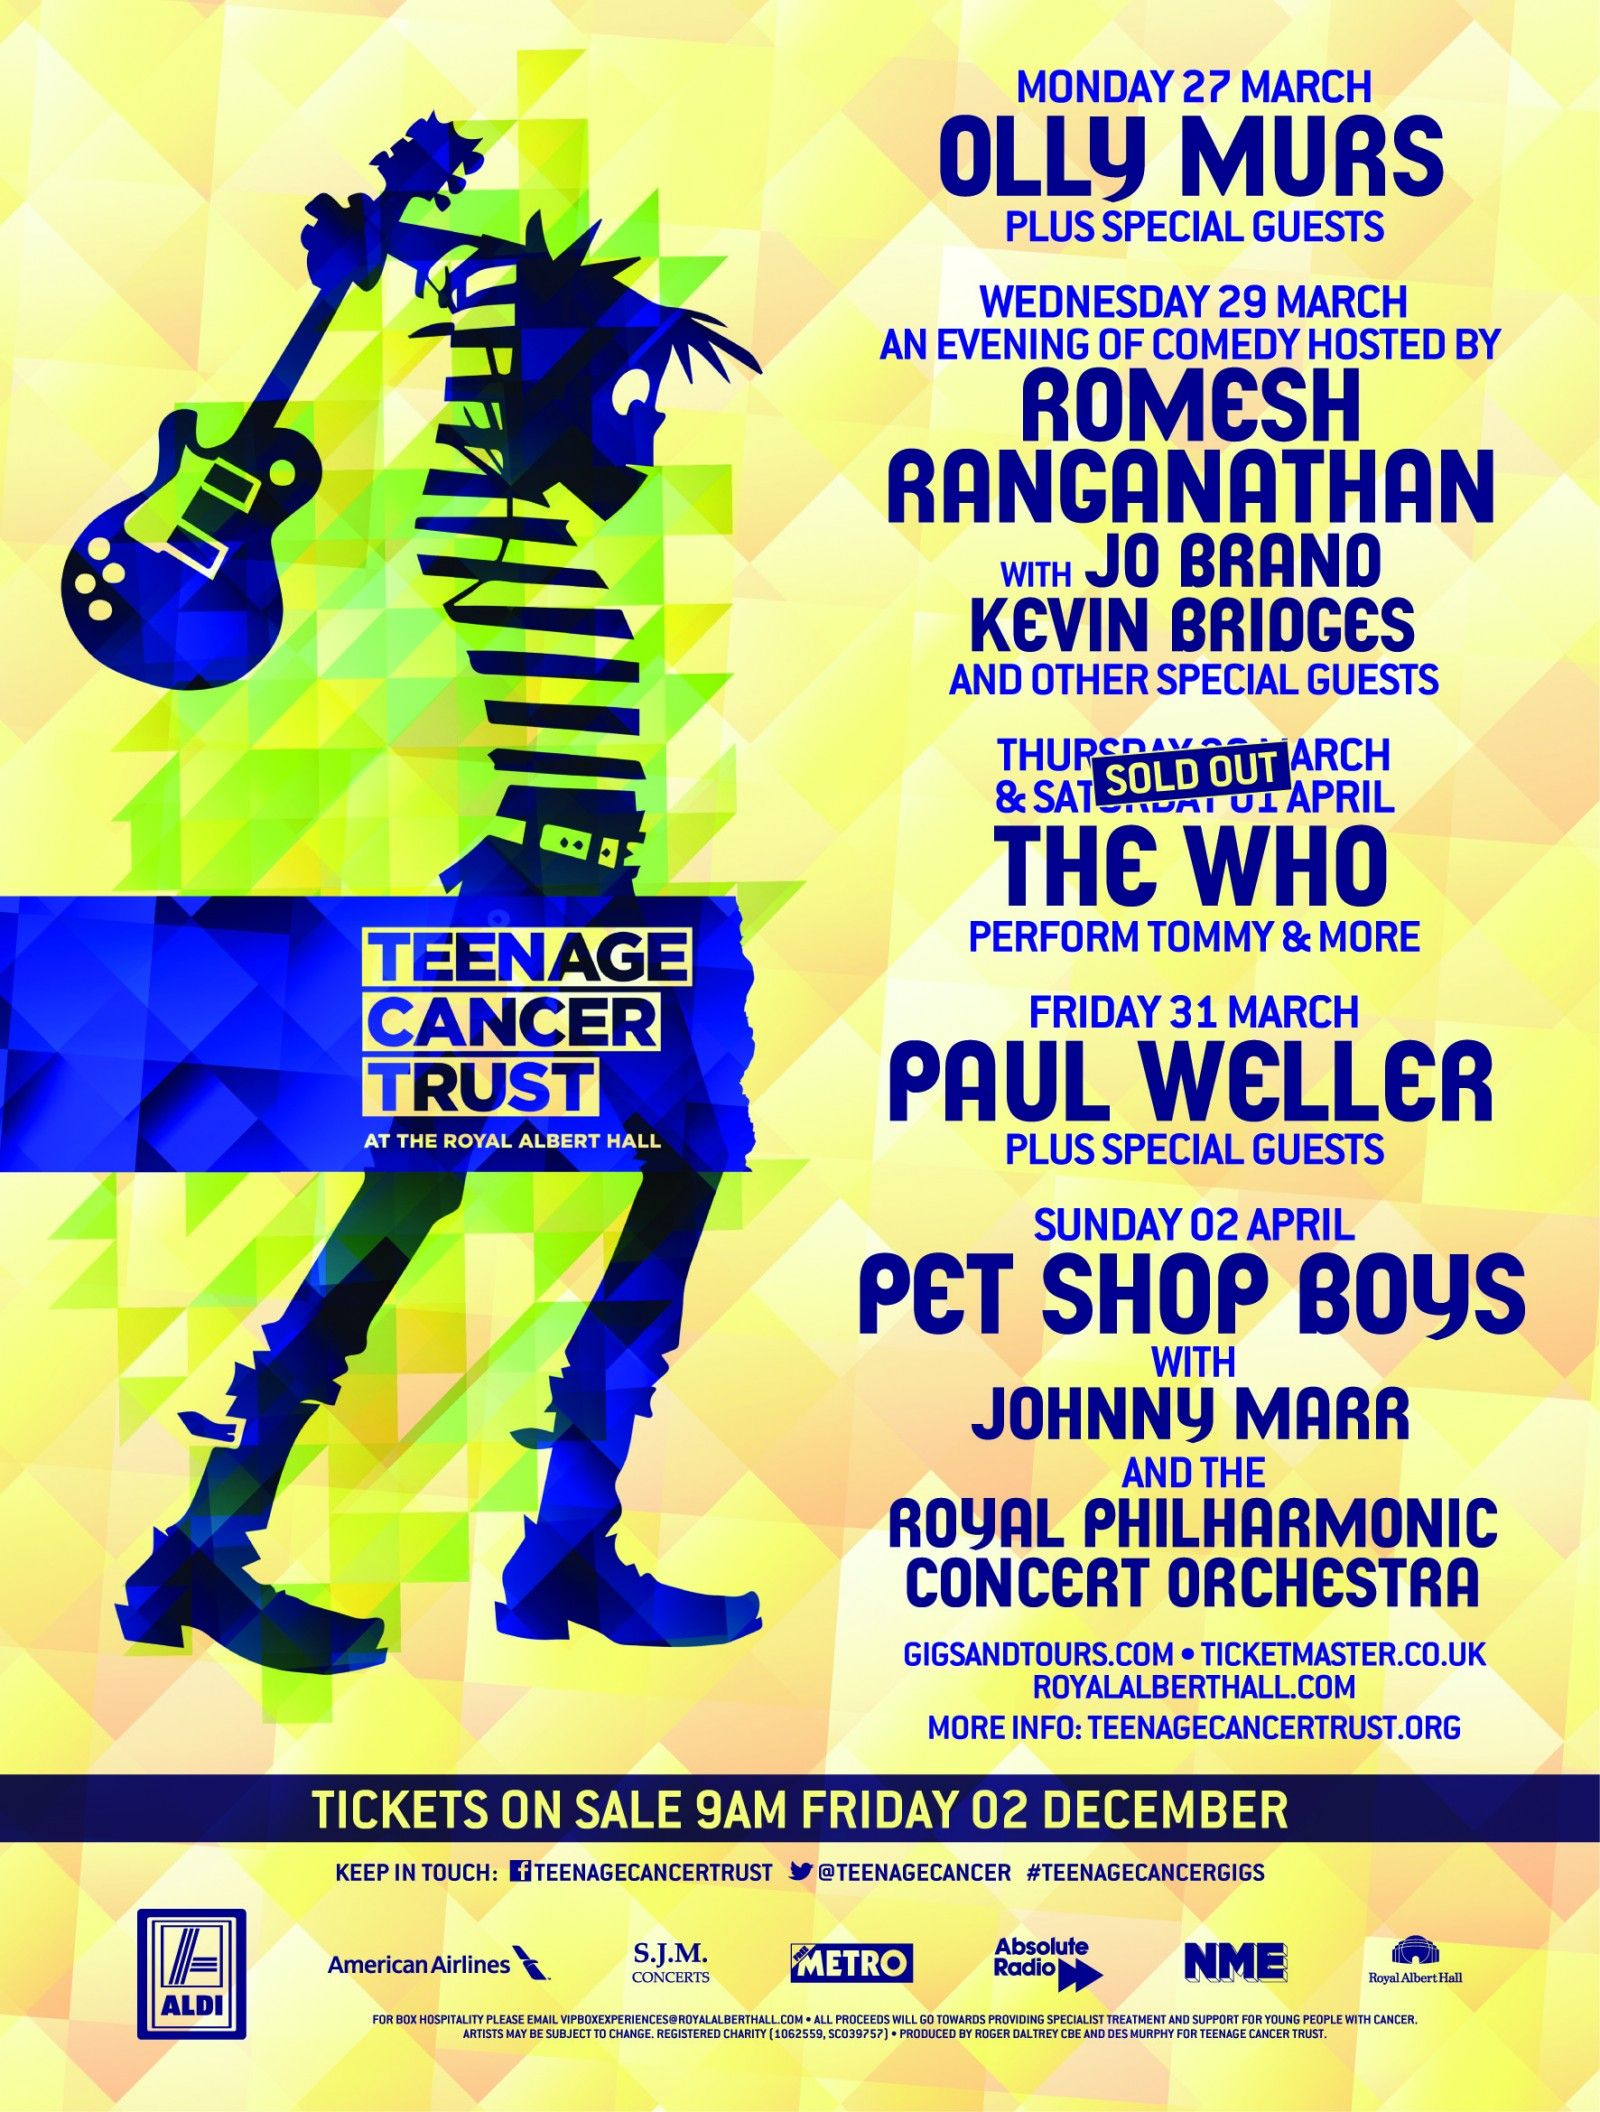 Ad for The Who's appearances at the 2017 Teenage Cancer Trust concerts on March 30 and April 1